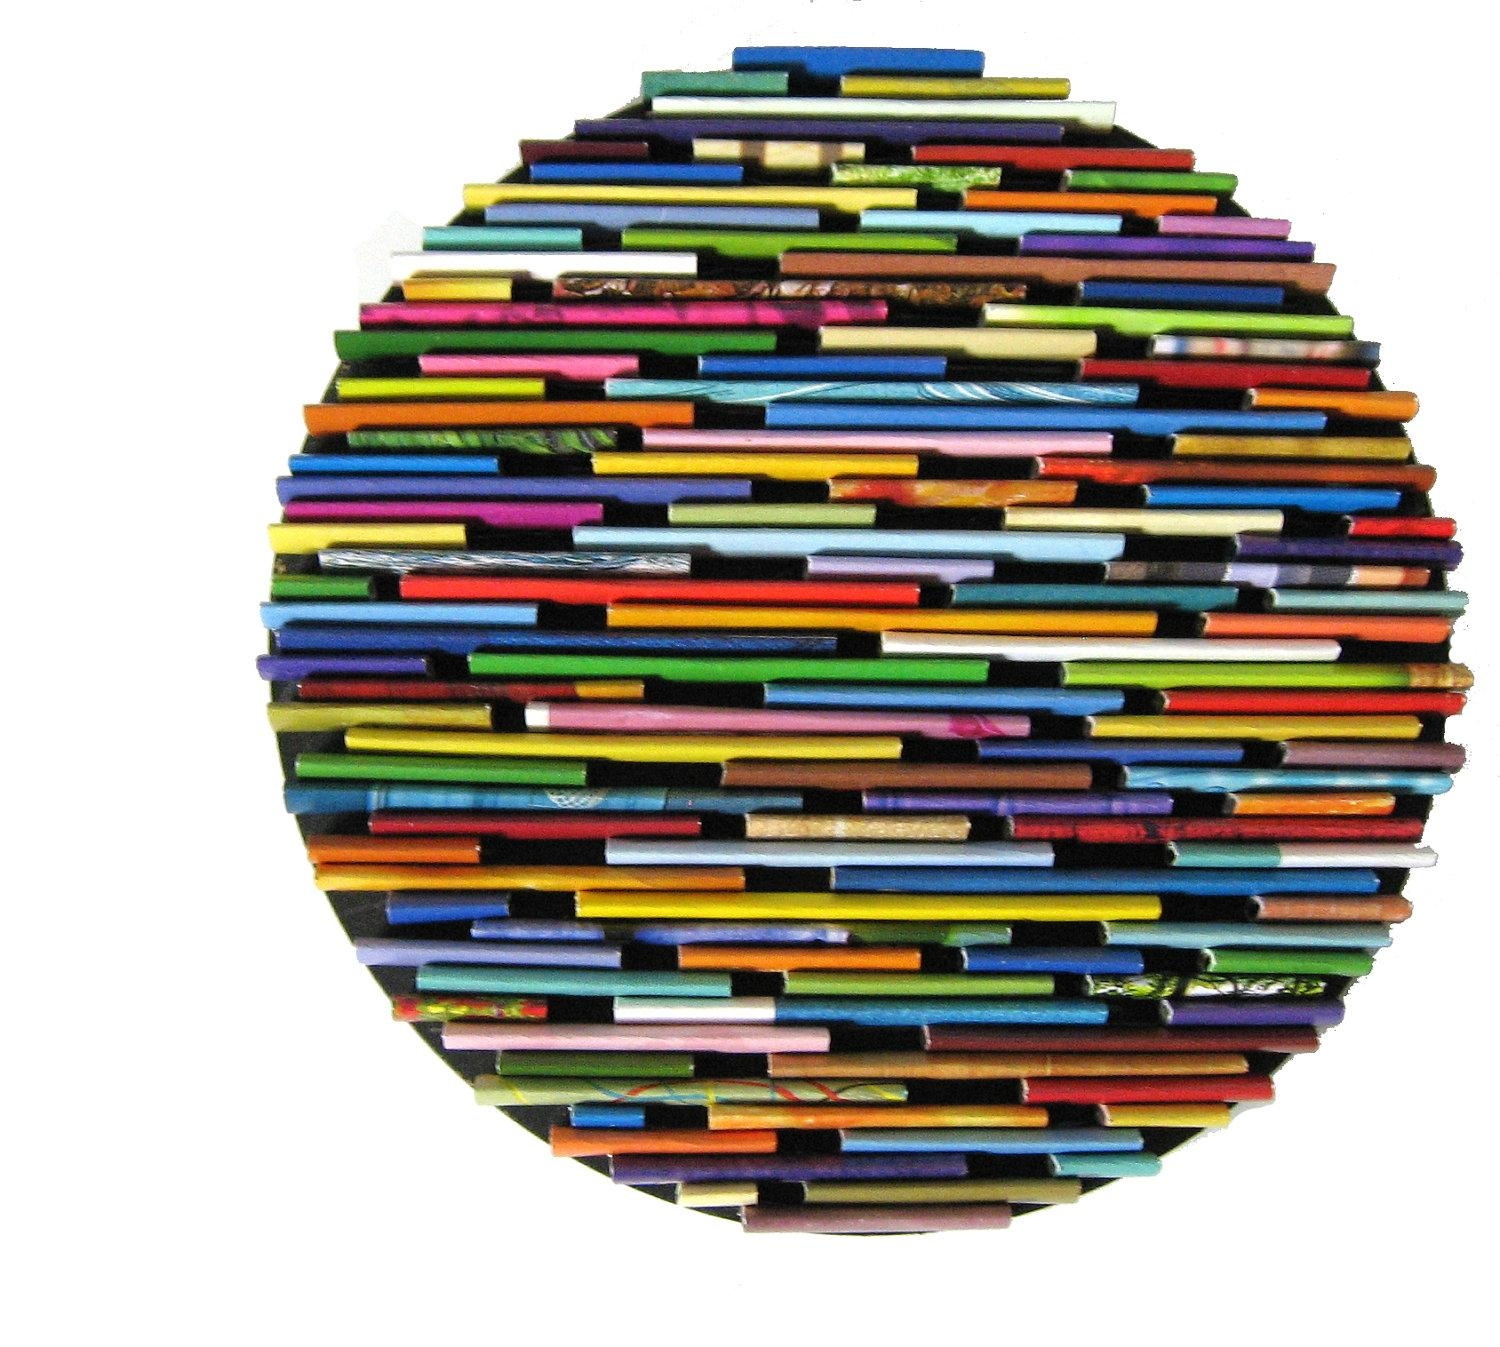 Round Wall Art Made From Recycled Magazines Colorful Unique Pertaining To Recycled Wall Art (Image 16 of 20)